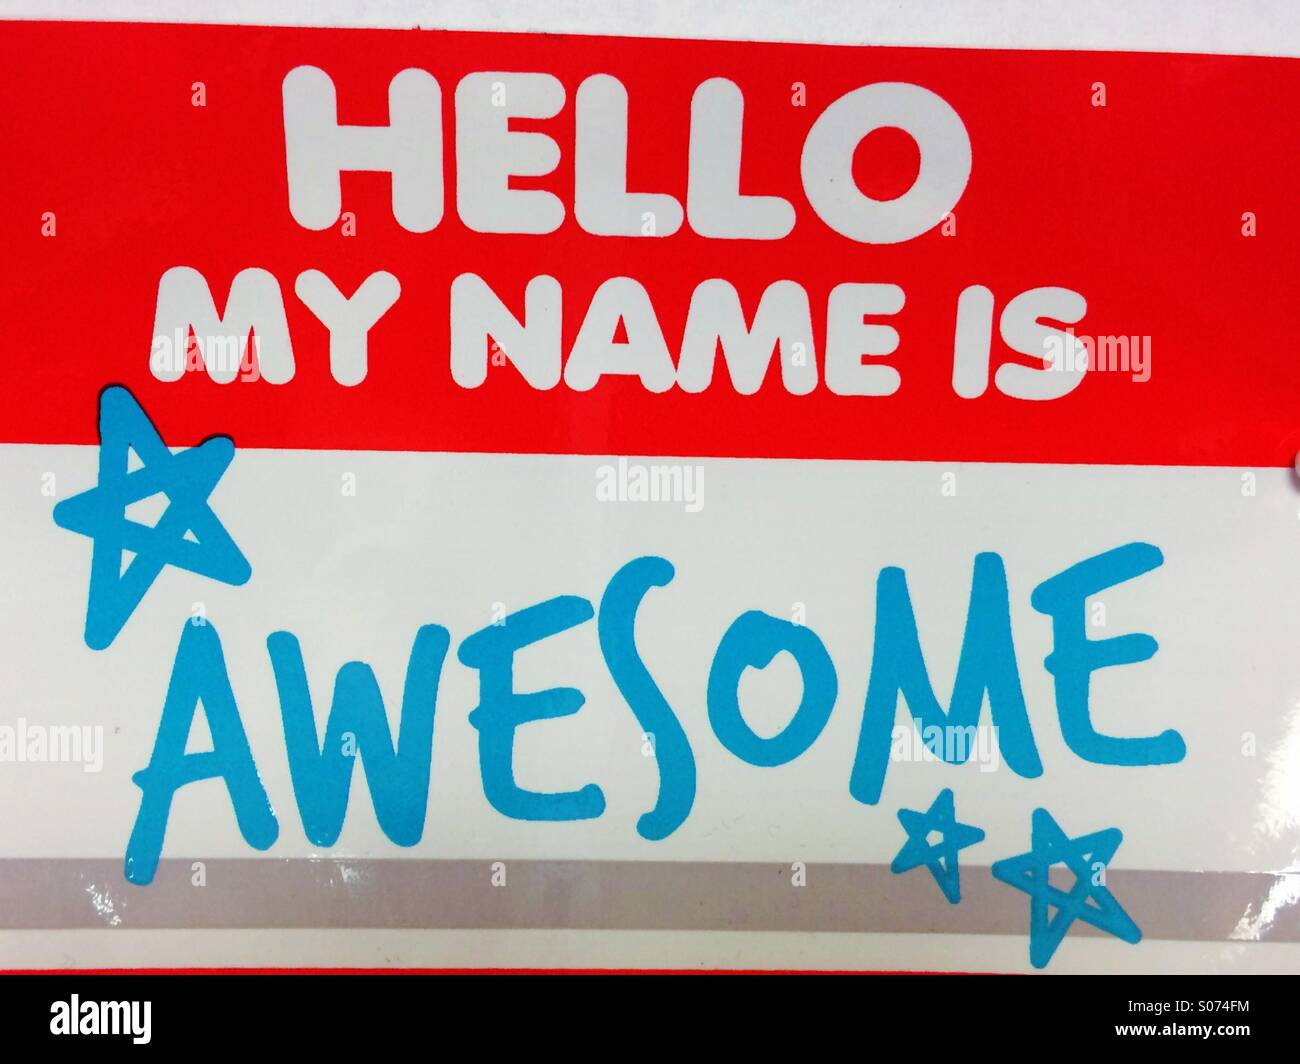 hello-my-name-is-awesome-S074FM.jpg